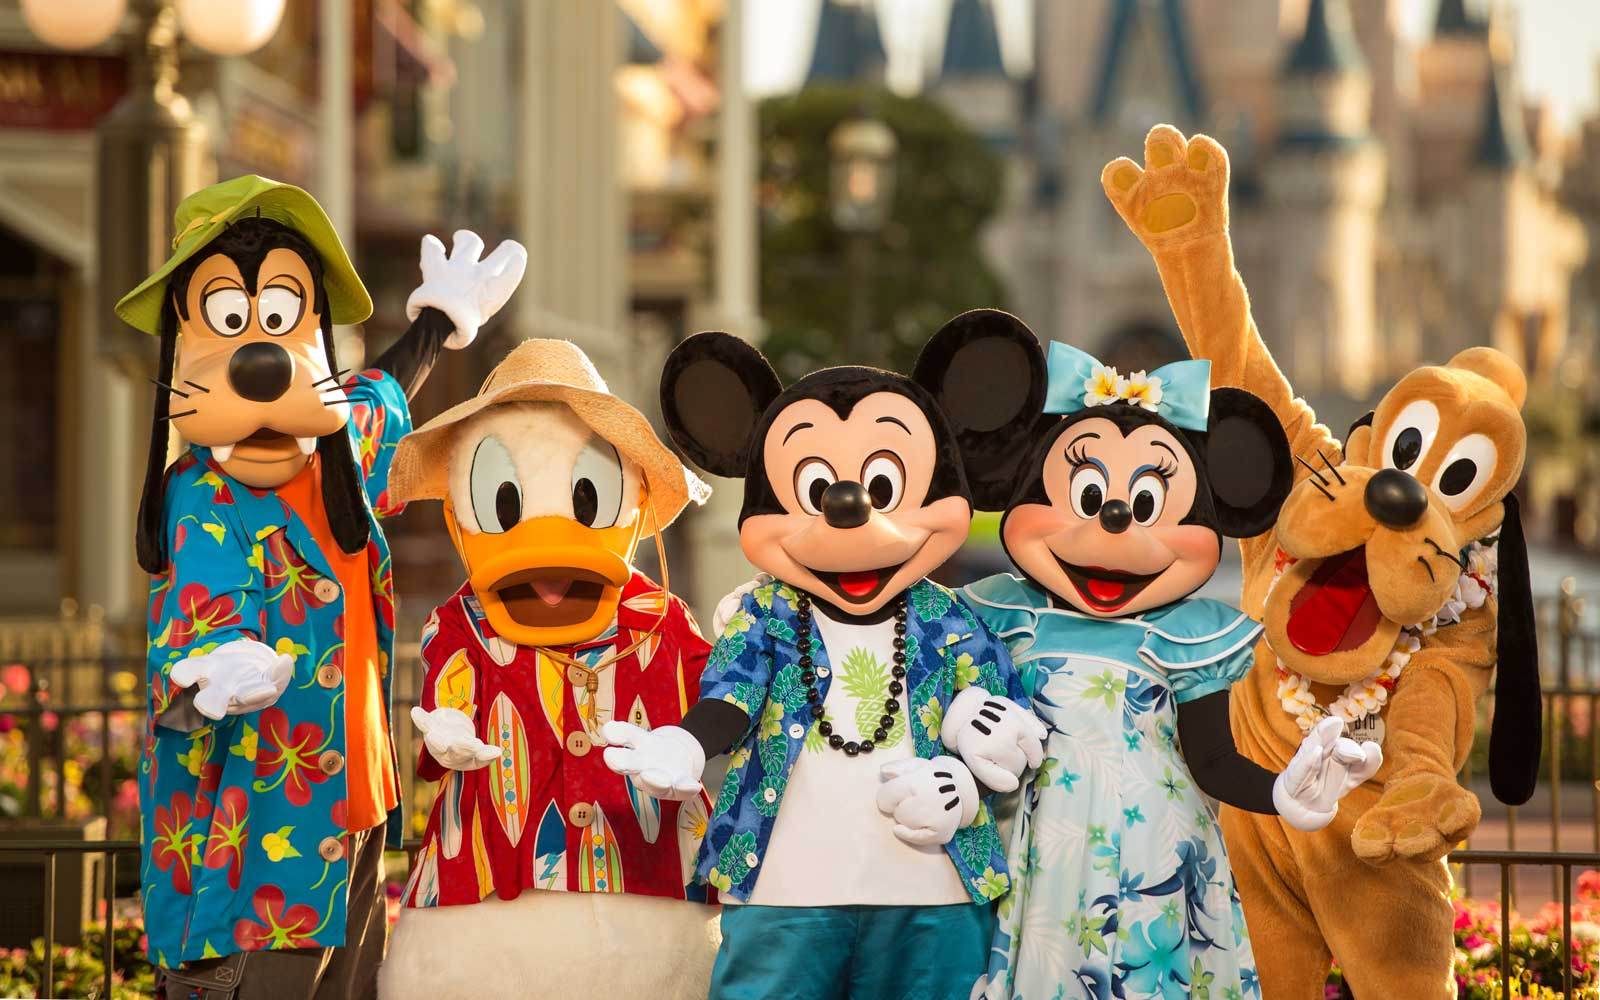 Goofy, Donald Duck, Mickey Mouse, Minnie Mouse, and Pluto